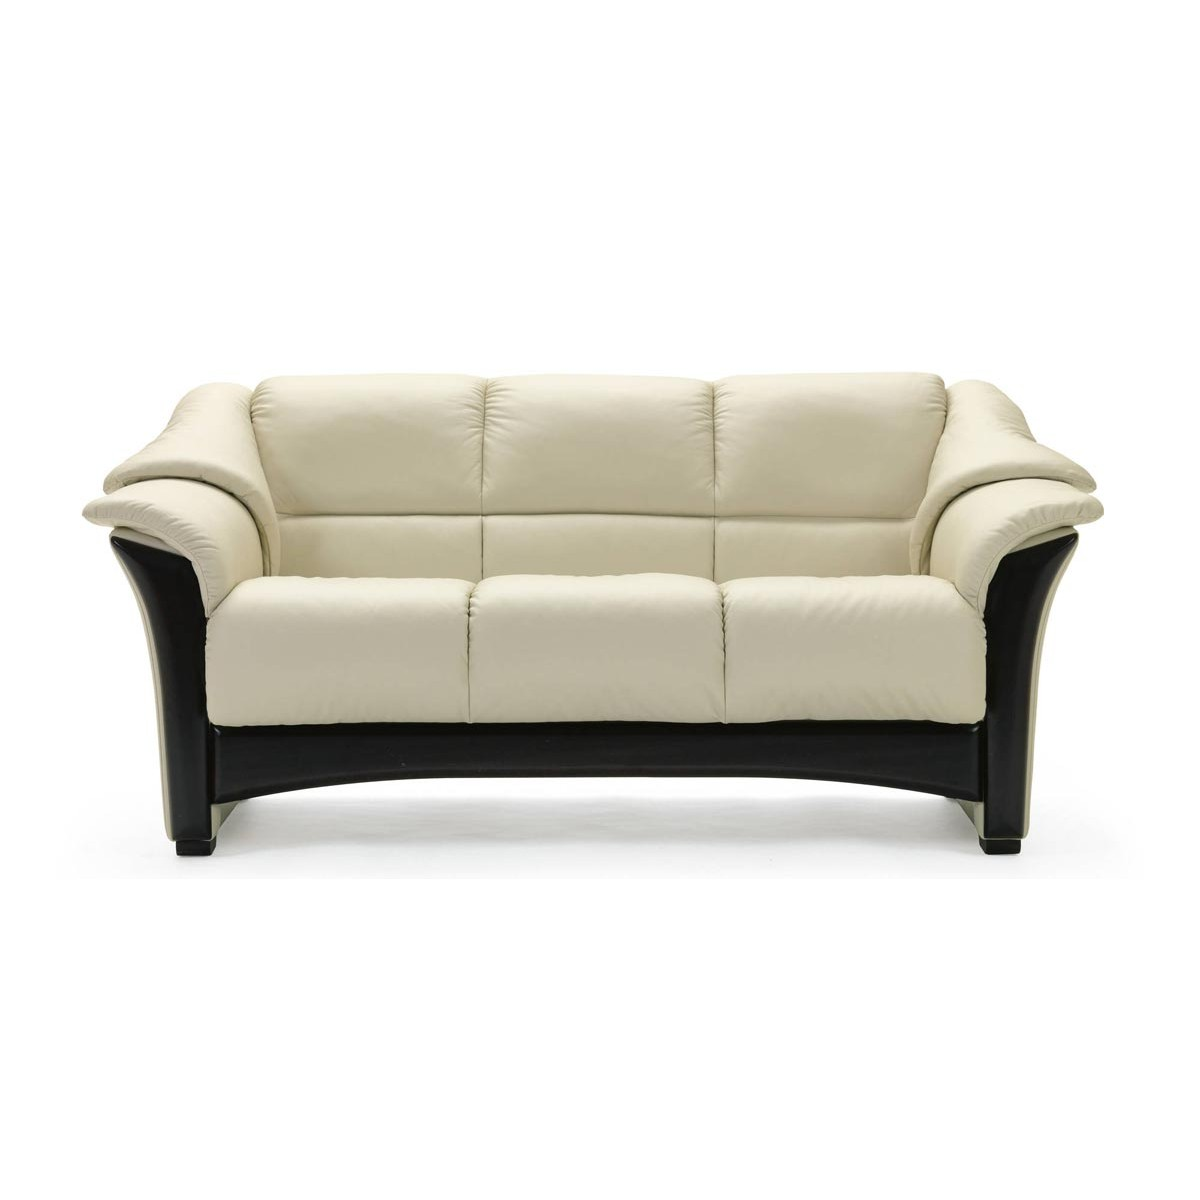 today home michael dallas amini garden wood shipping by overstock trim loveseat product free